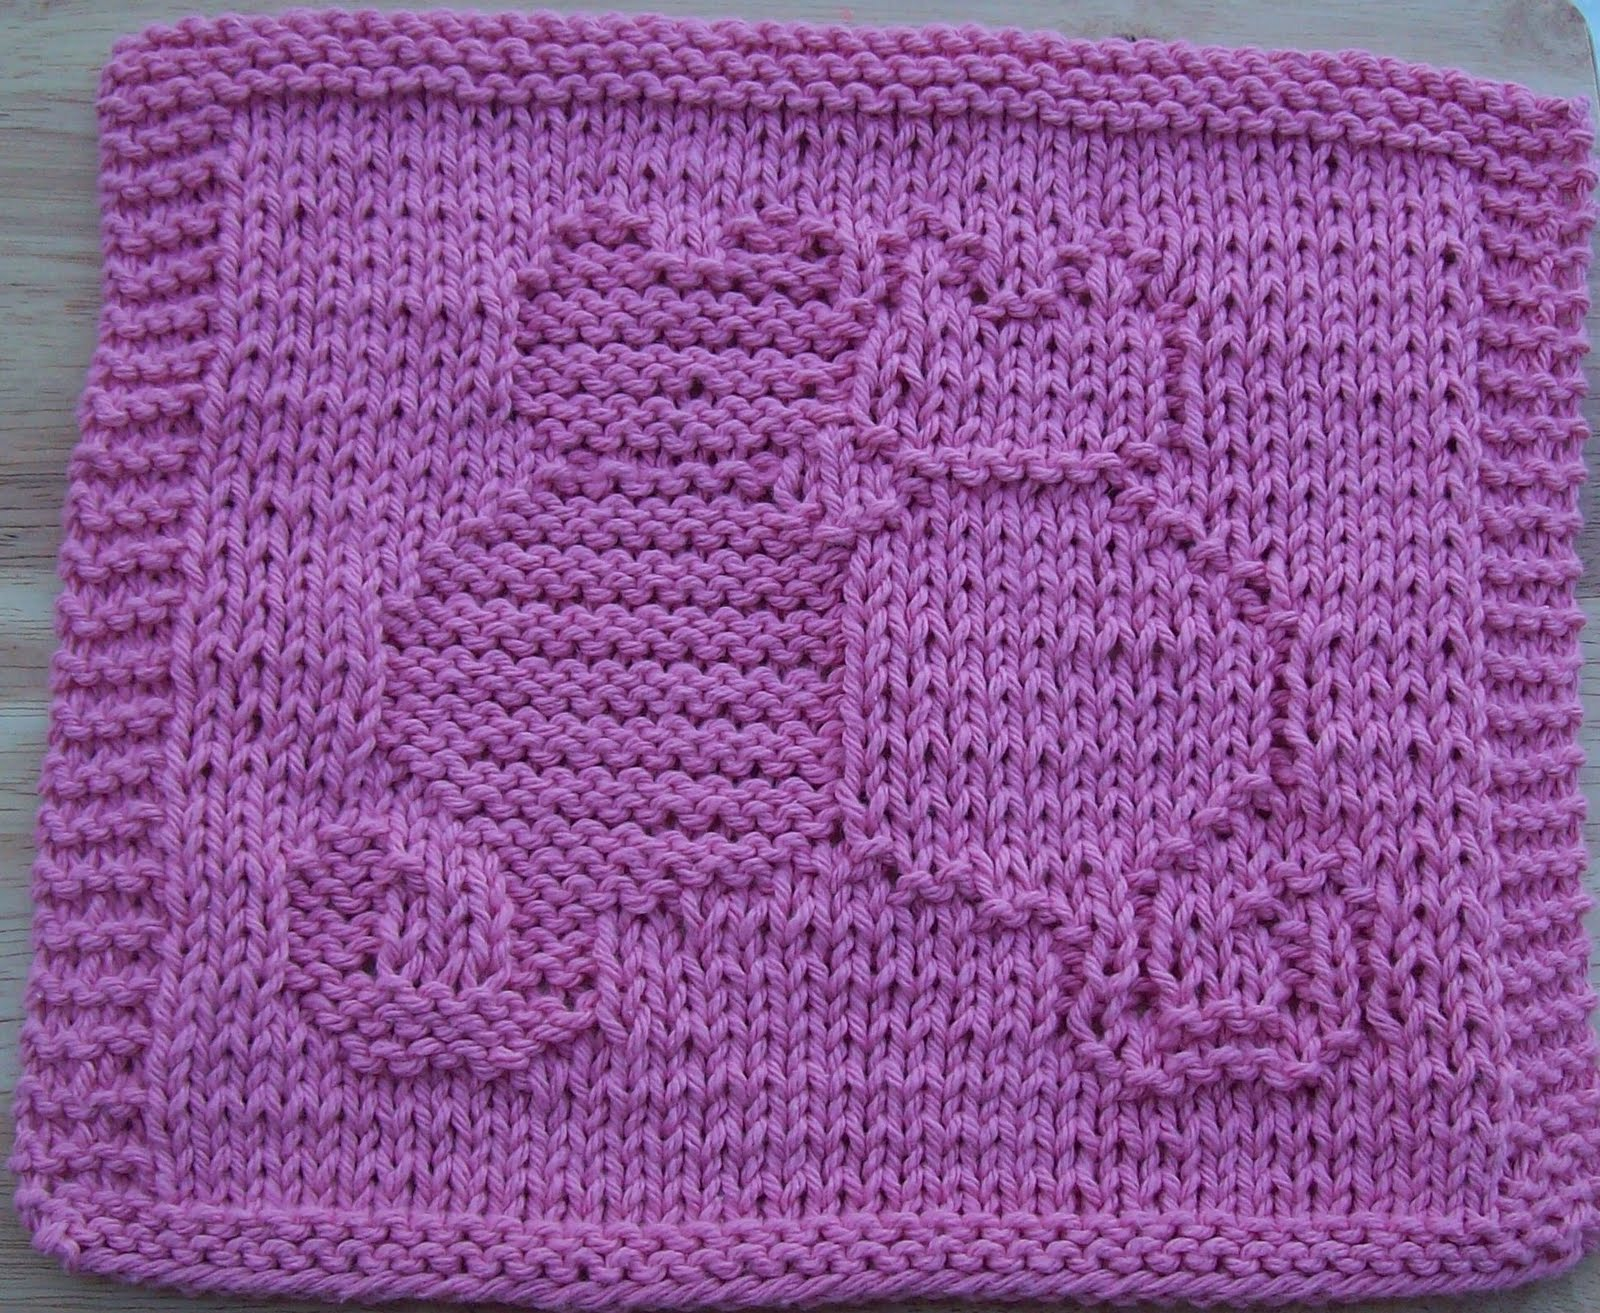 Knitted Dishcloth Patterns : DigKnitty Designs: Snuggling Cats Knit Dishcloth Pattern